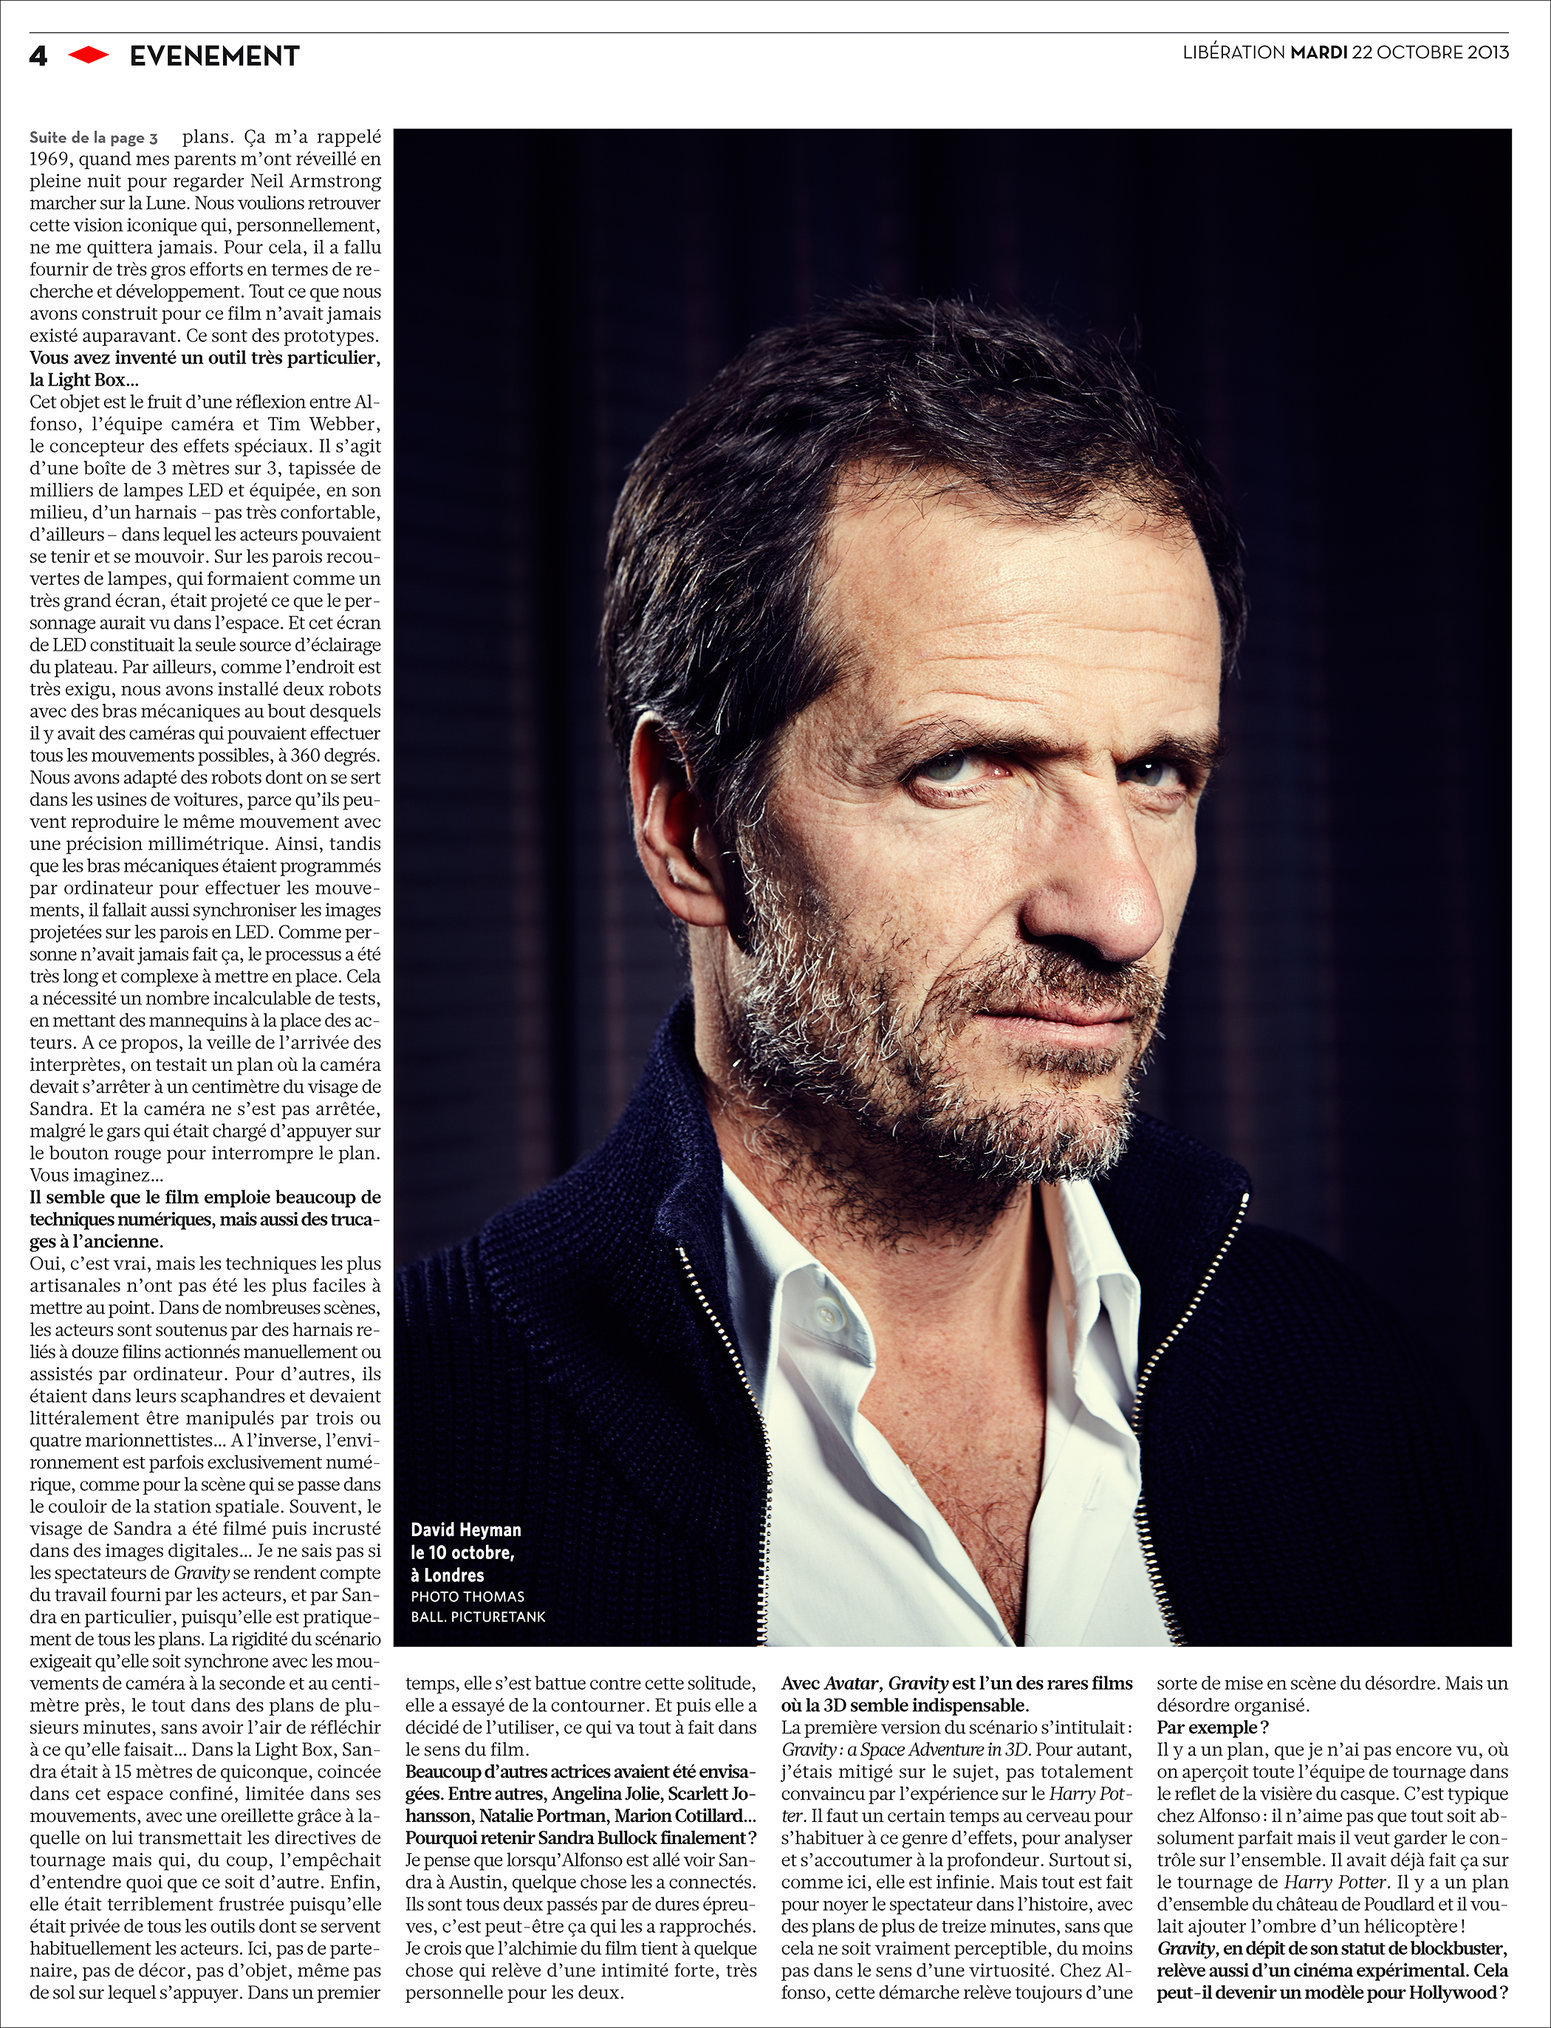 Thomas_Ball_David_Heyman_Liberation.jpg